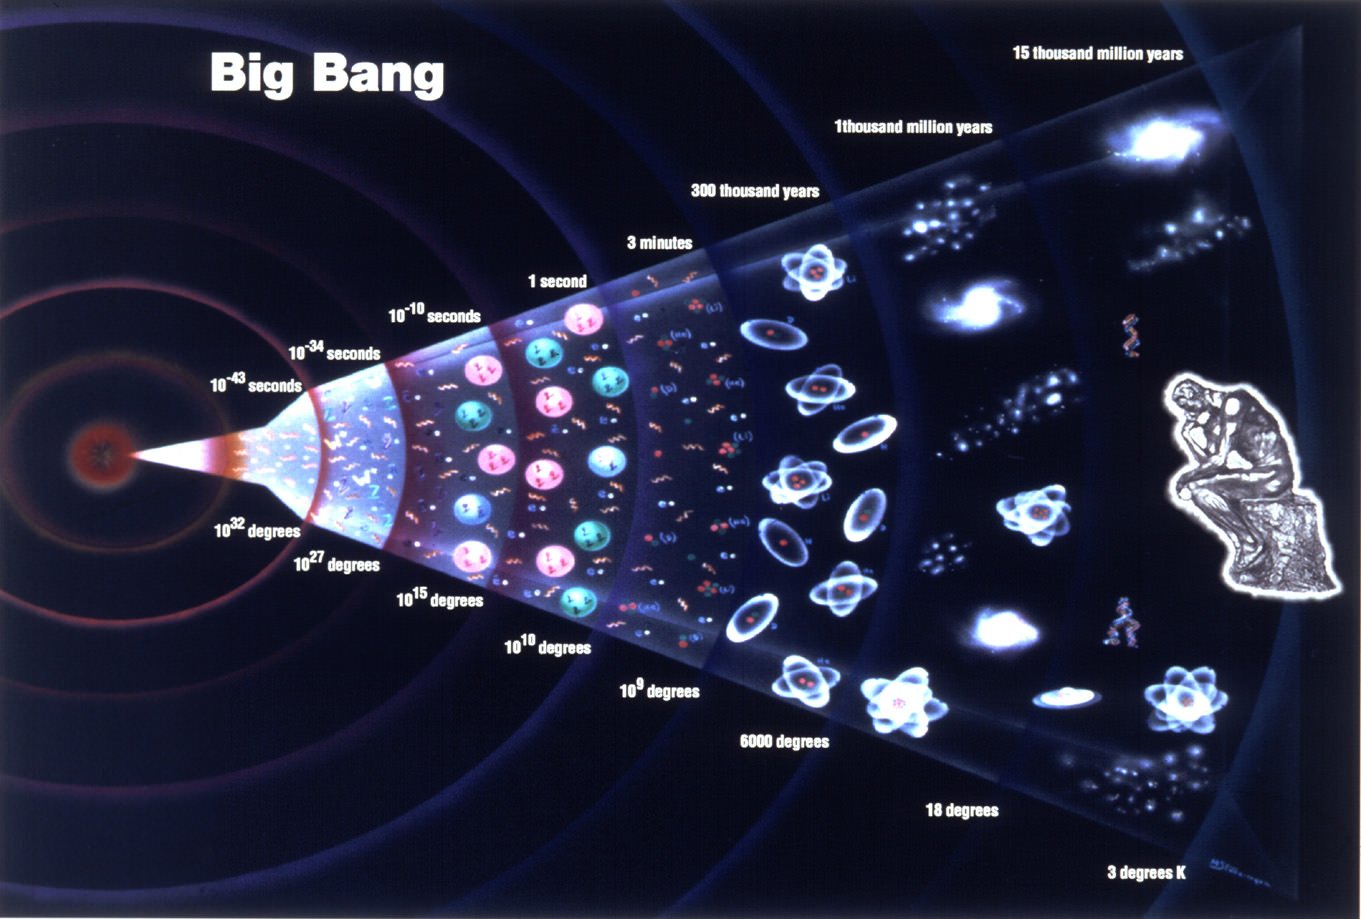 Big Bang Theory: Evolution of Our Universe - Universe Today